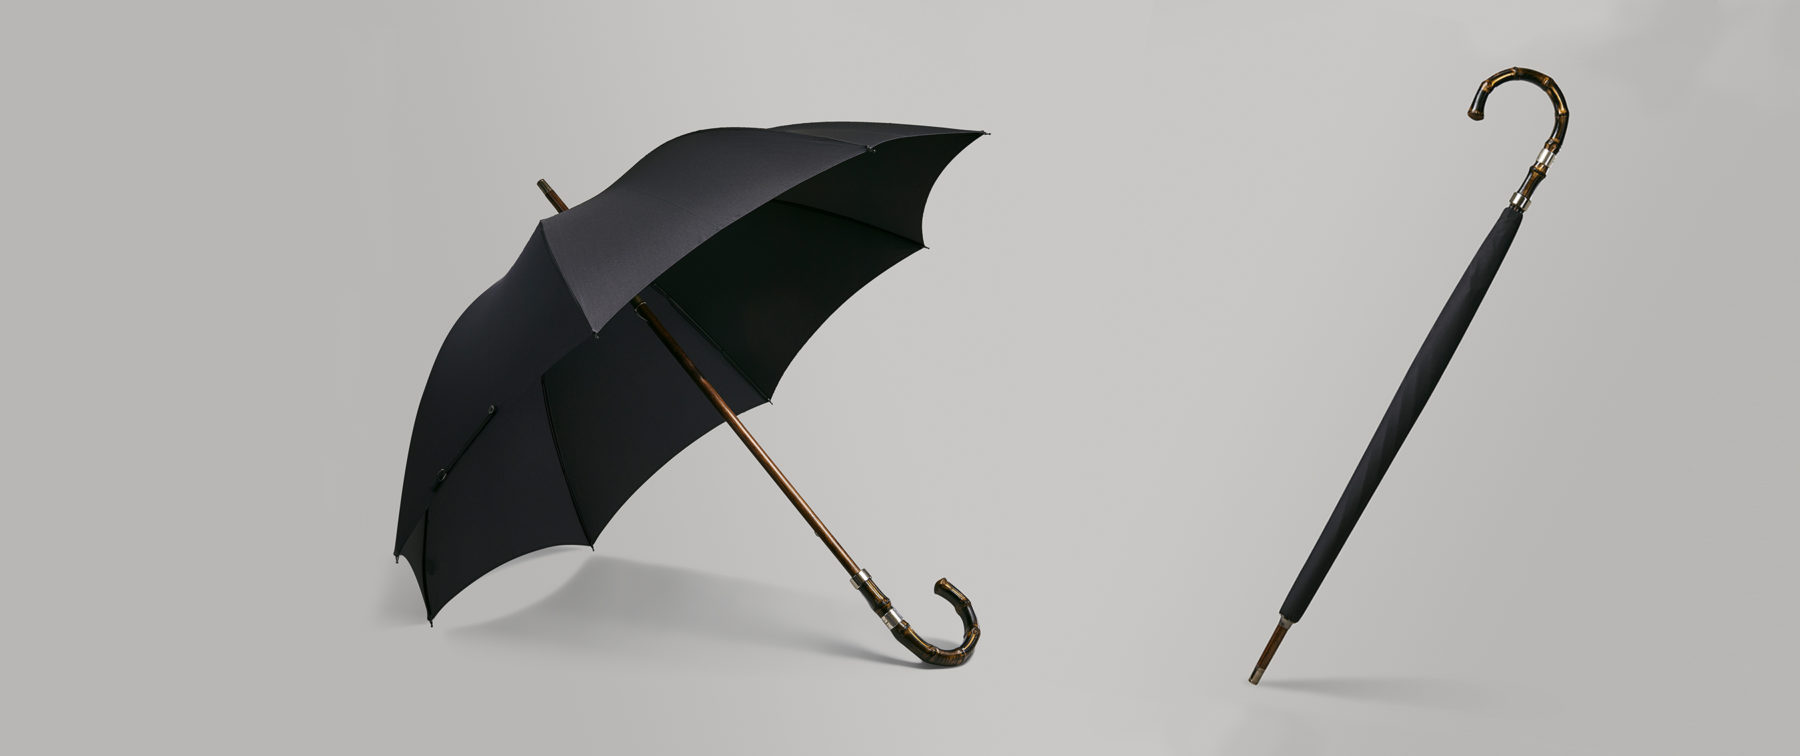 a2153b838f2 These umbrellas will fight spring showers in style